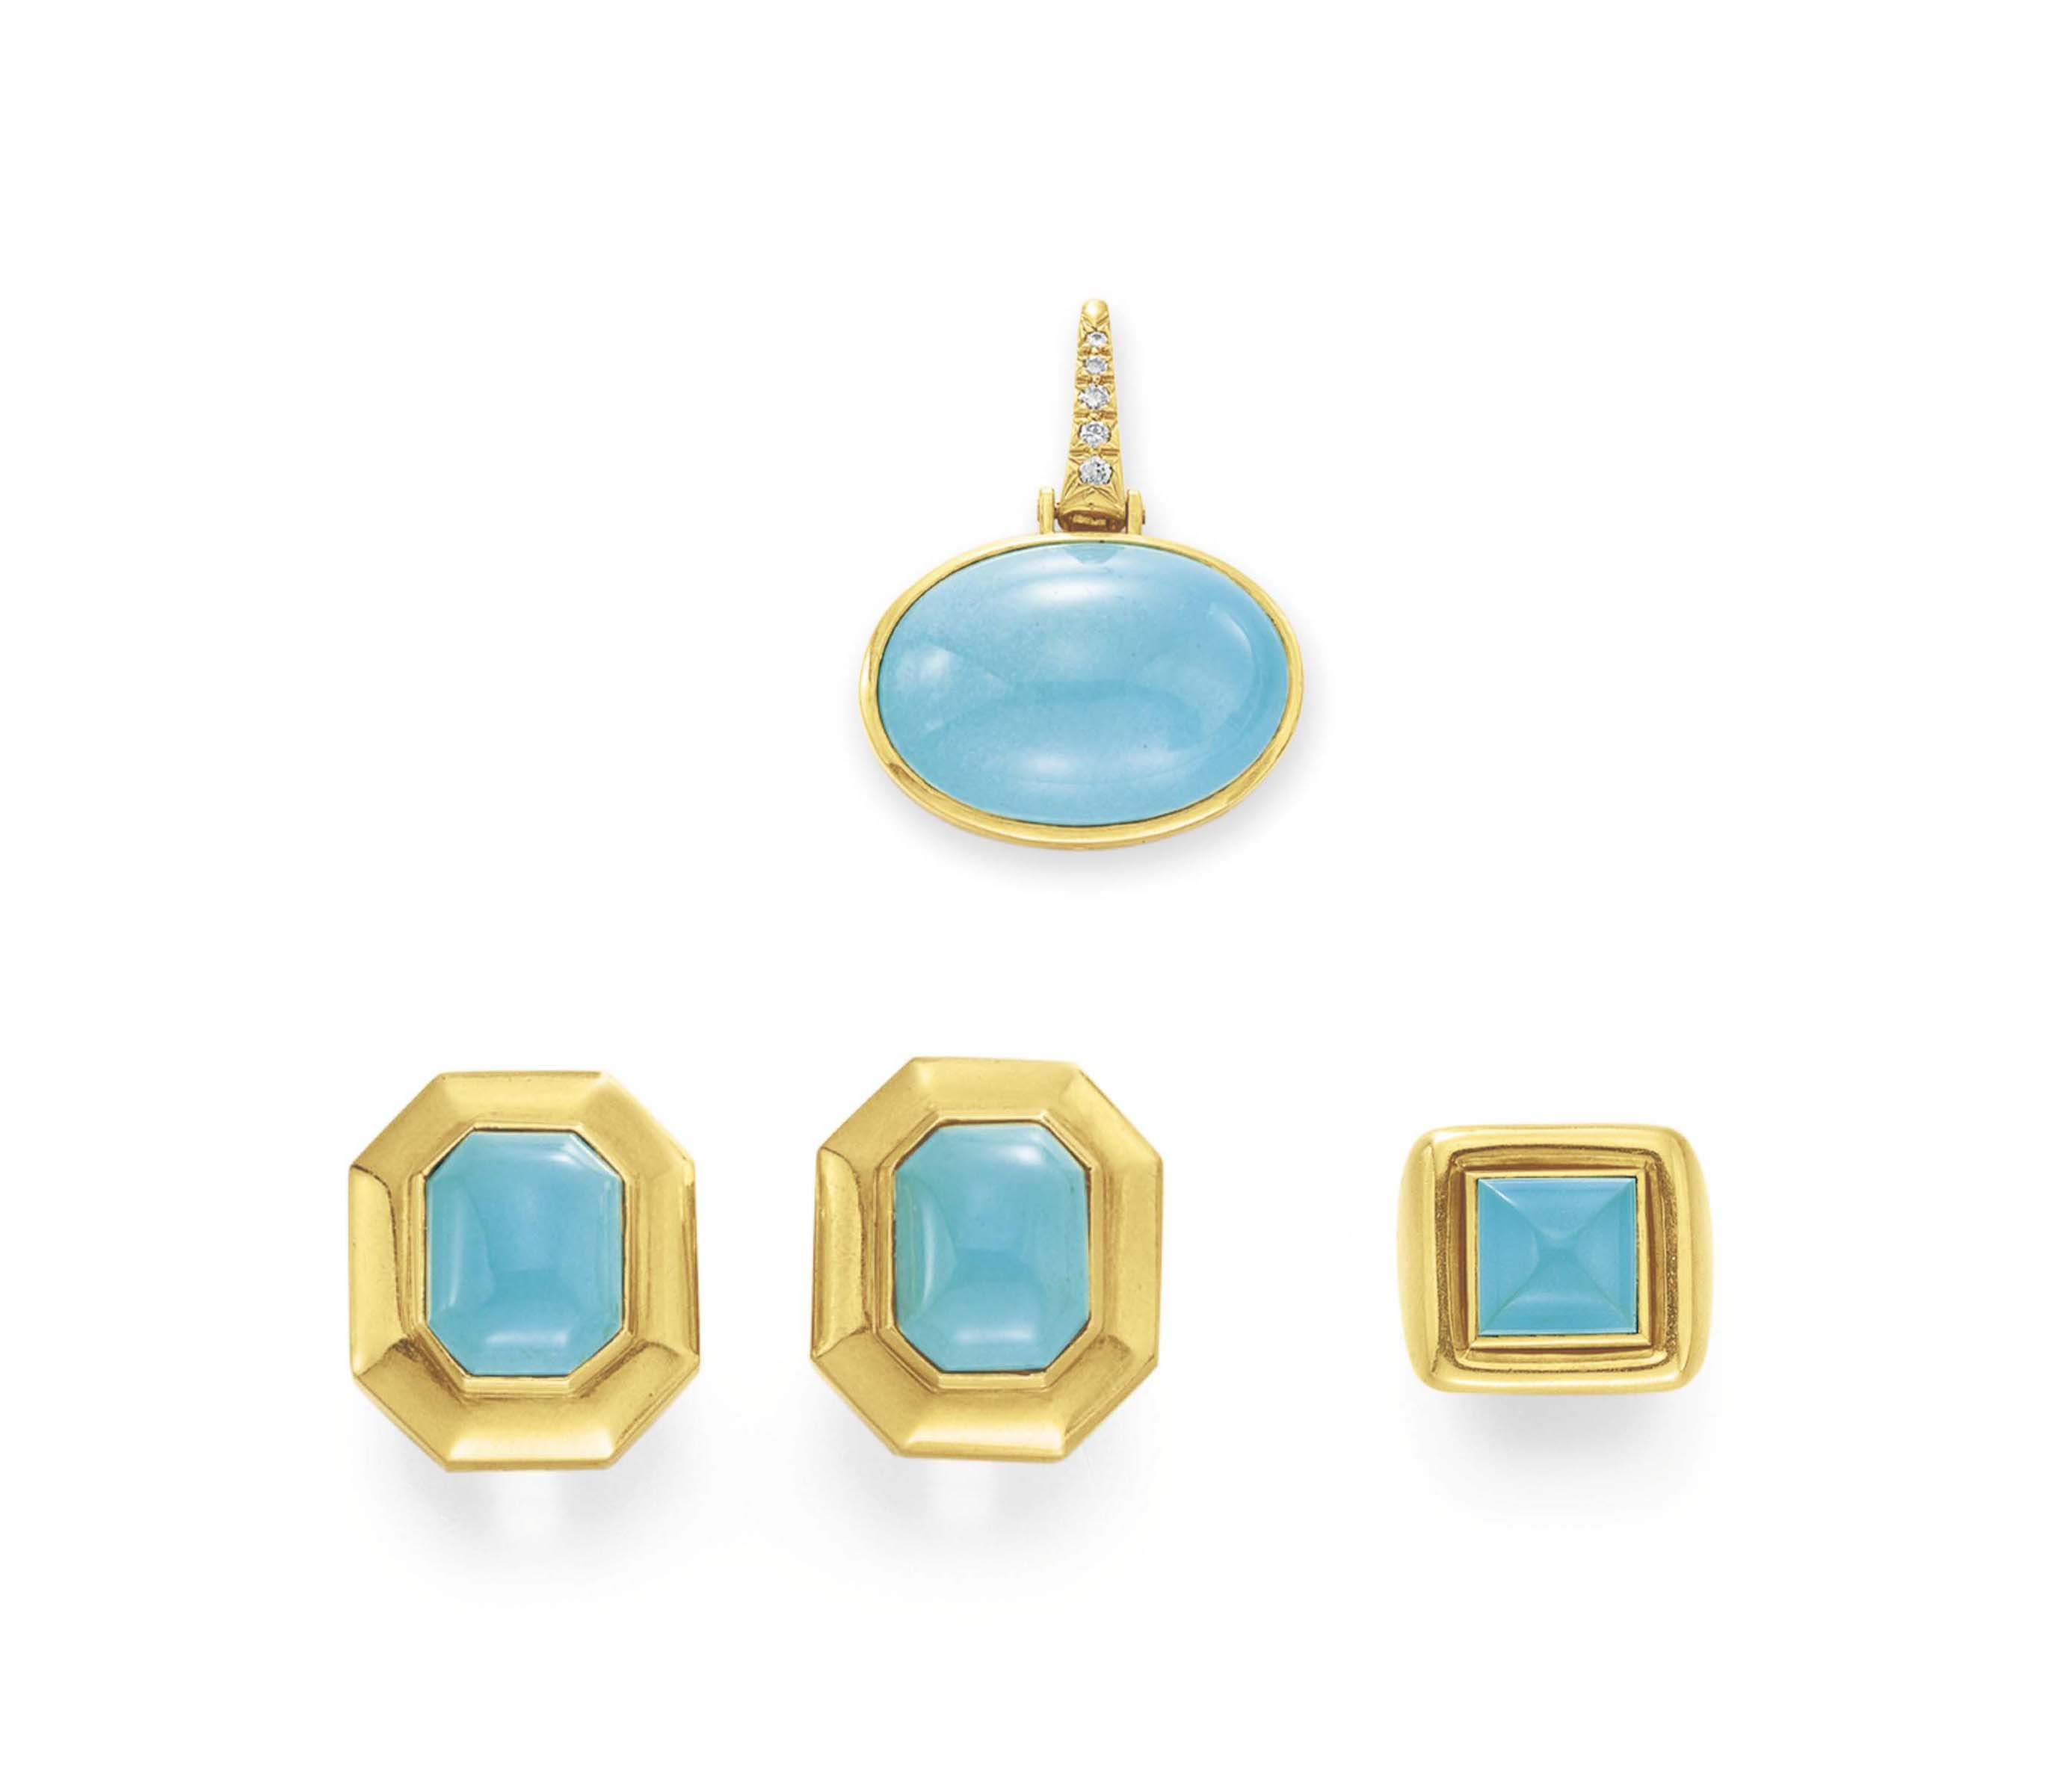 A GROUP OF TURQUOISE AND GOLD JEWELRY, BY ANDREW CLUNN